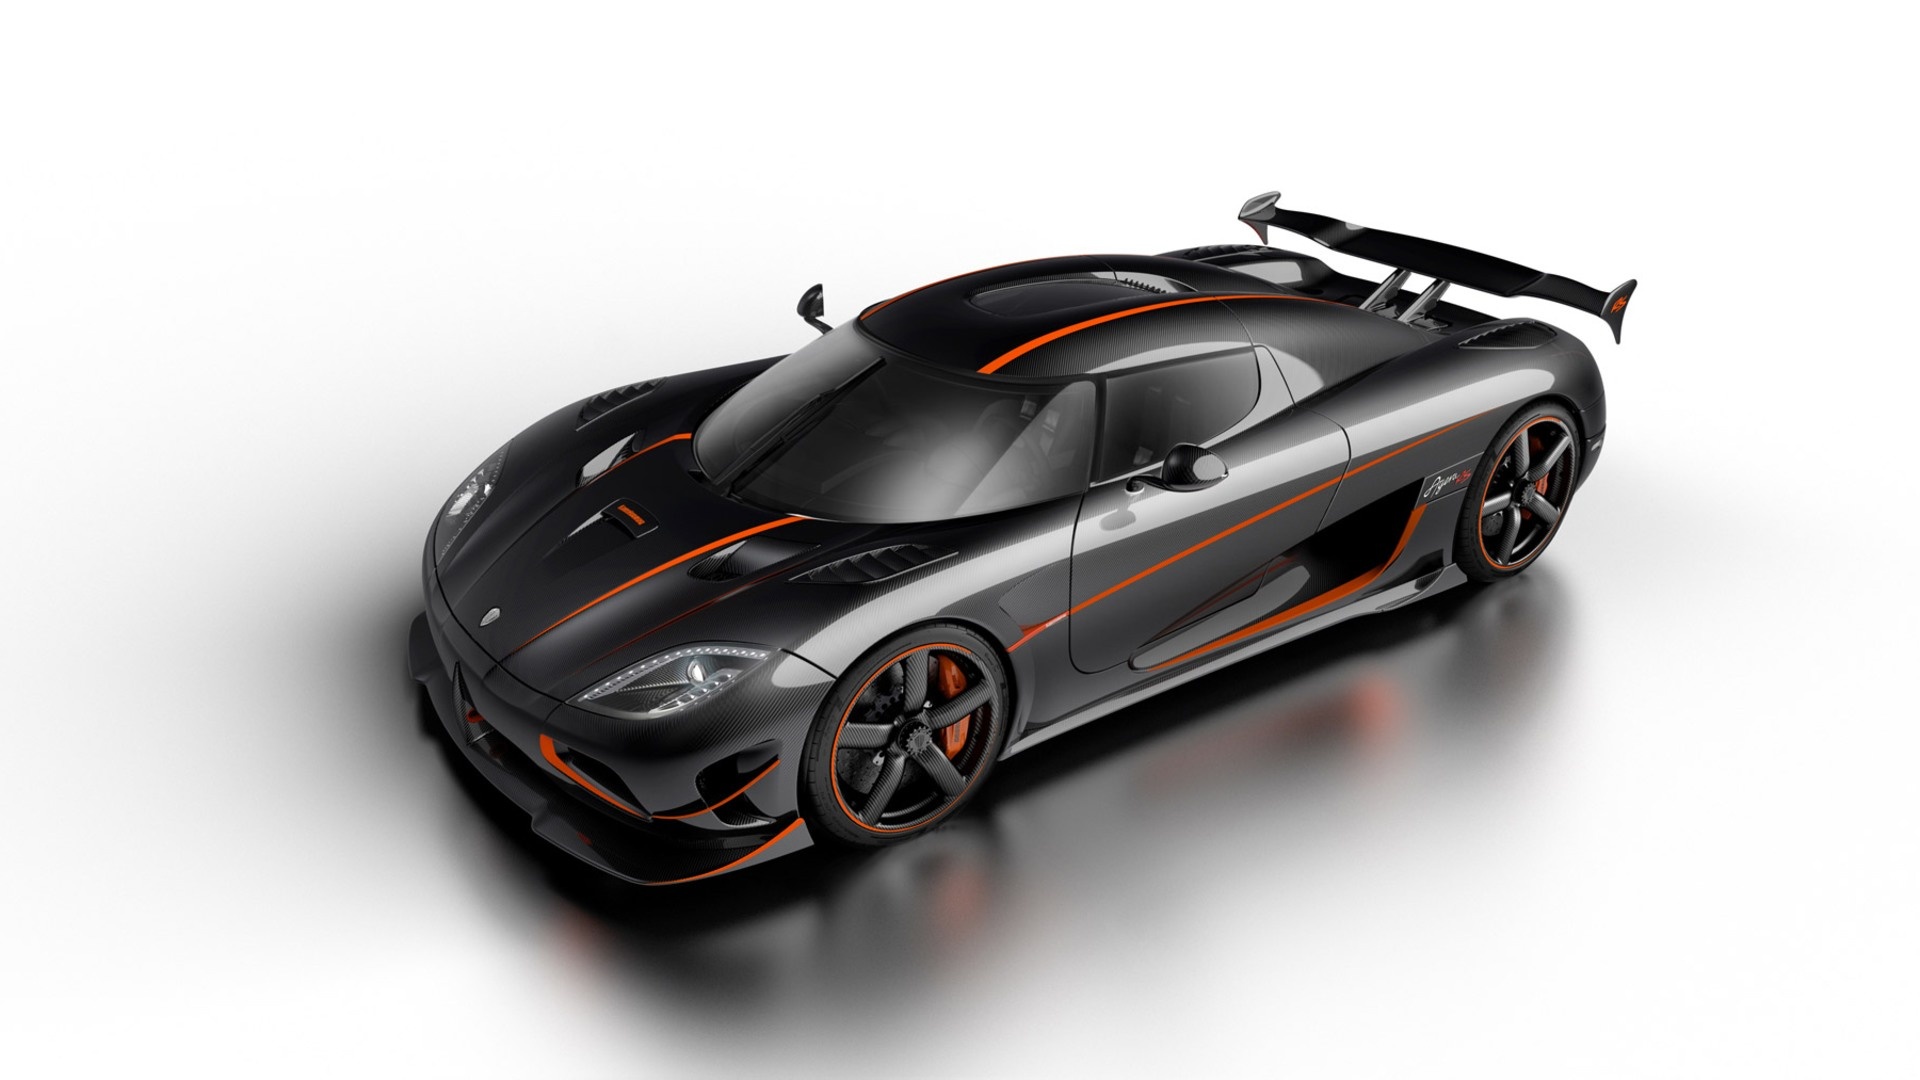 Facts About Koenigsegg Agera R Lovely Koenigsegg Agera Rs Races Into Geneva with 1 160 Horsepower